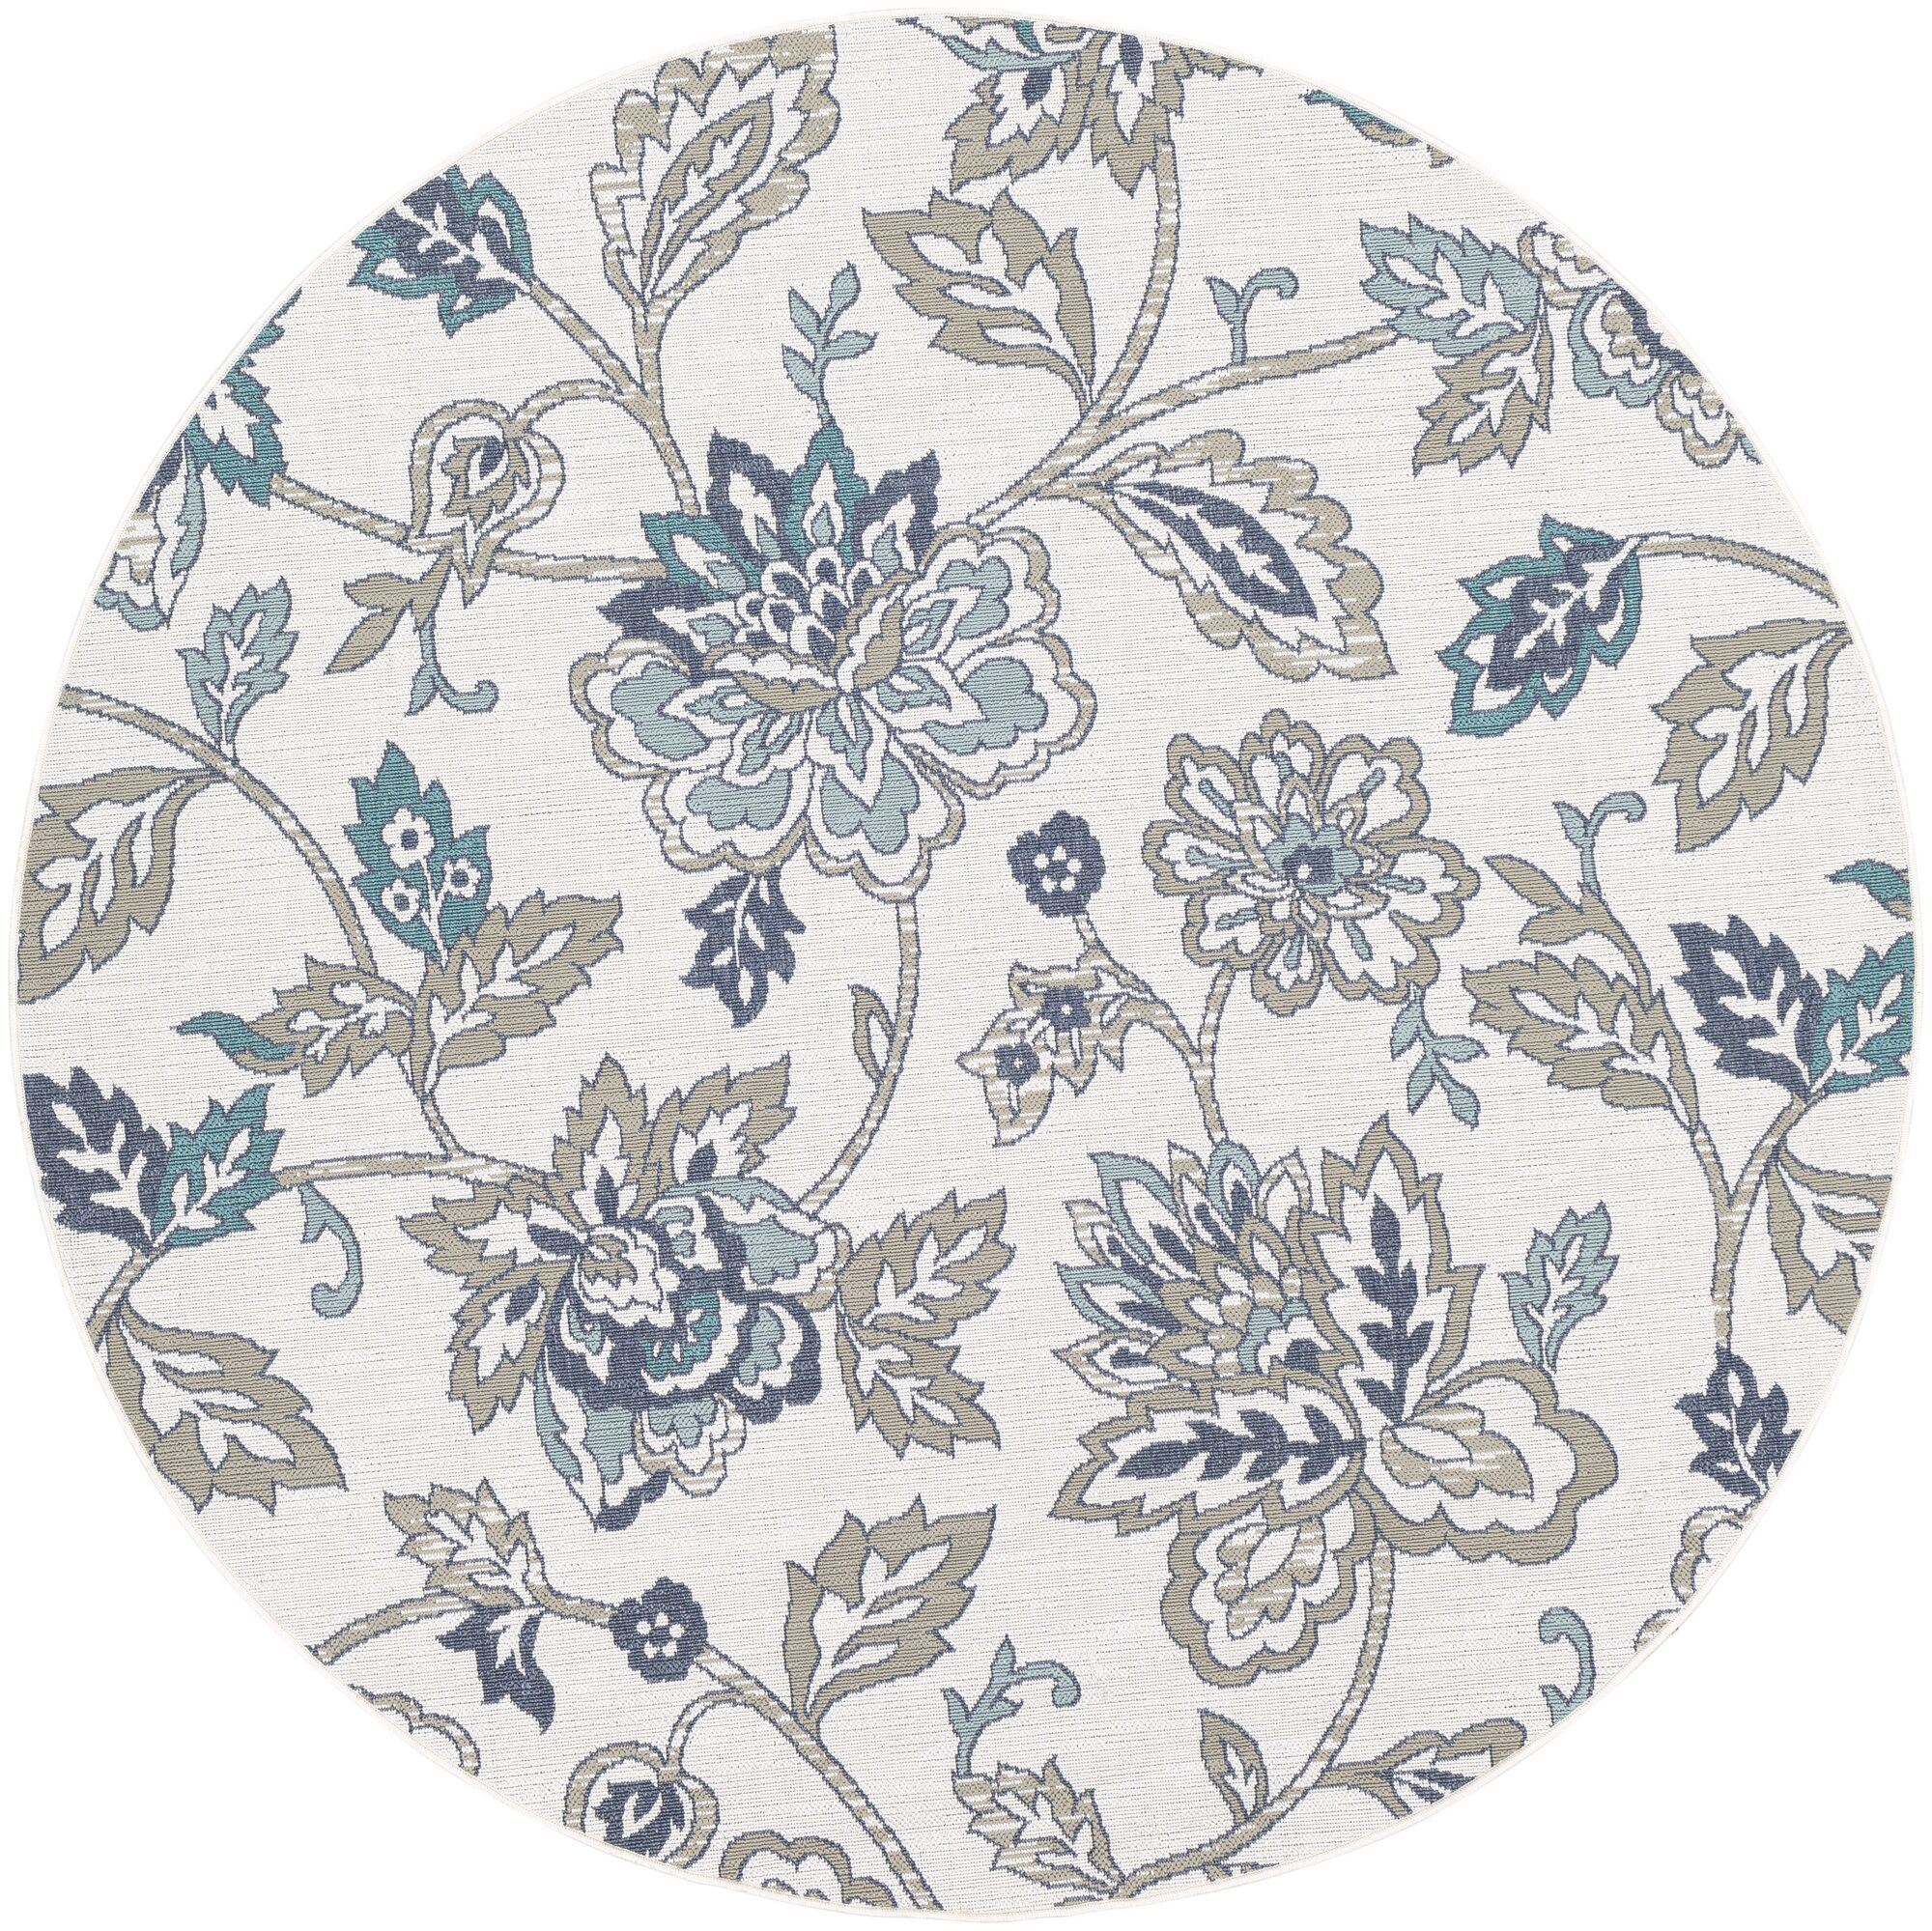 Pearce Floral Aqua/Taupe Indoor/Outdoor Area Rug Rug Size: Round 8'9